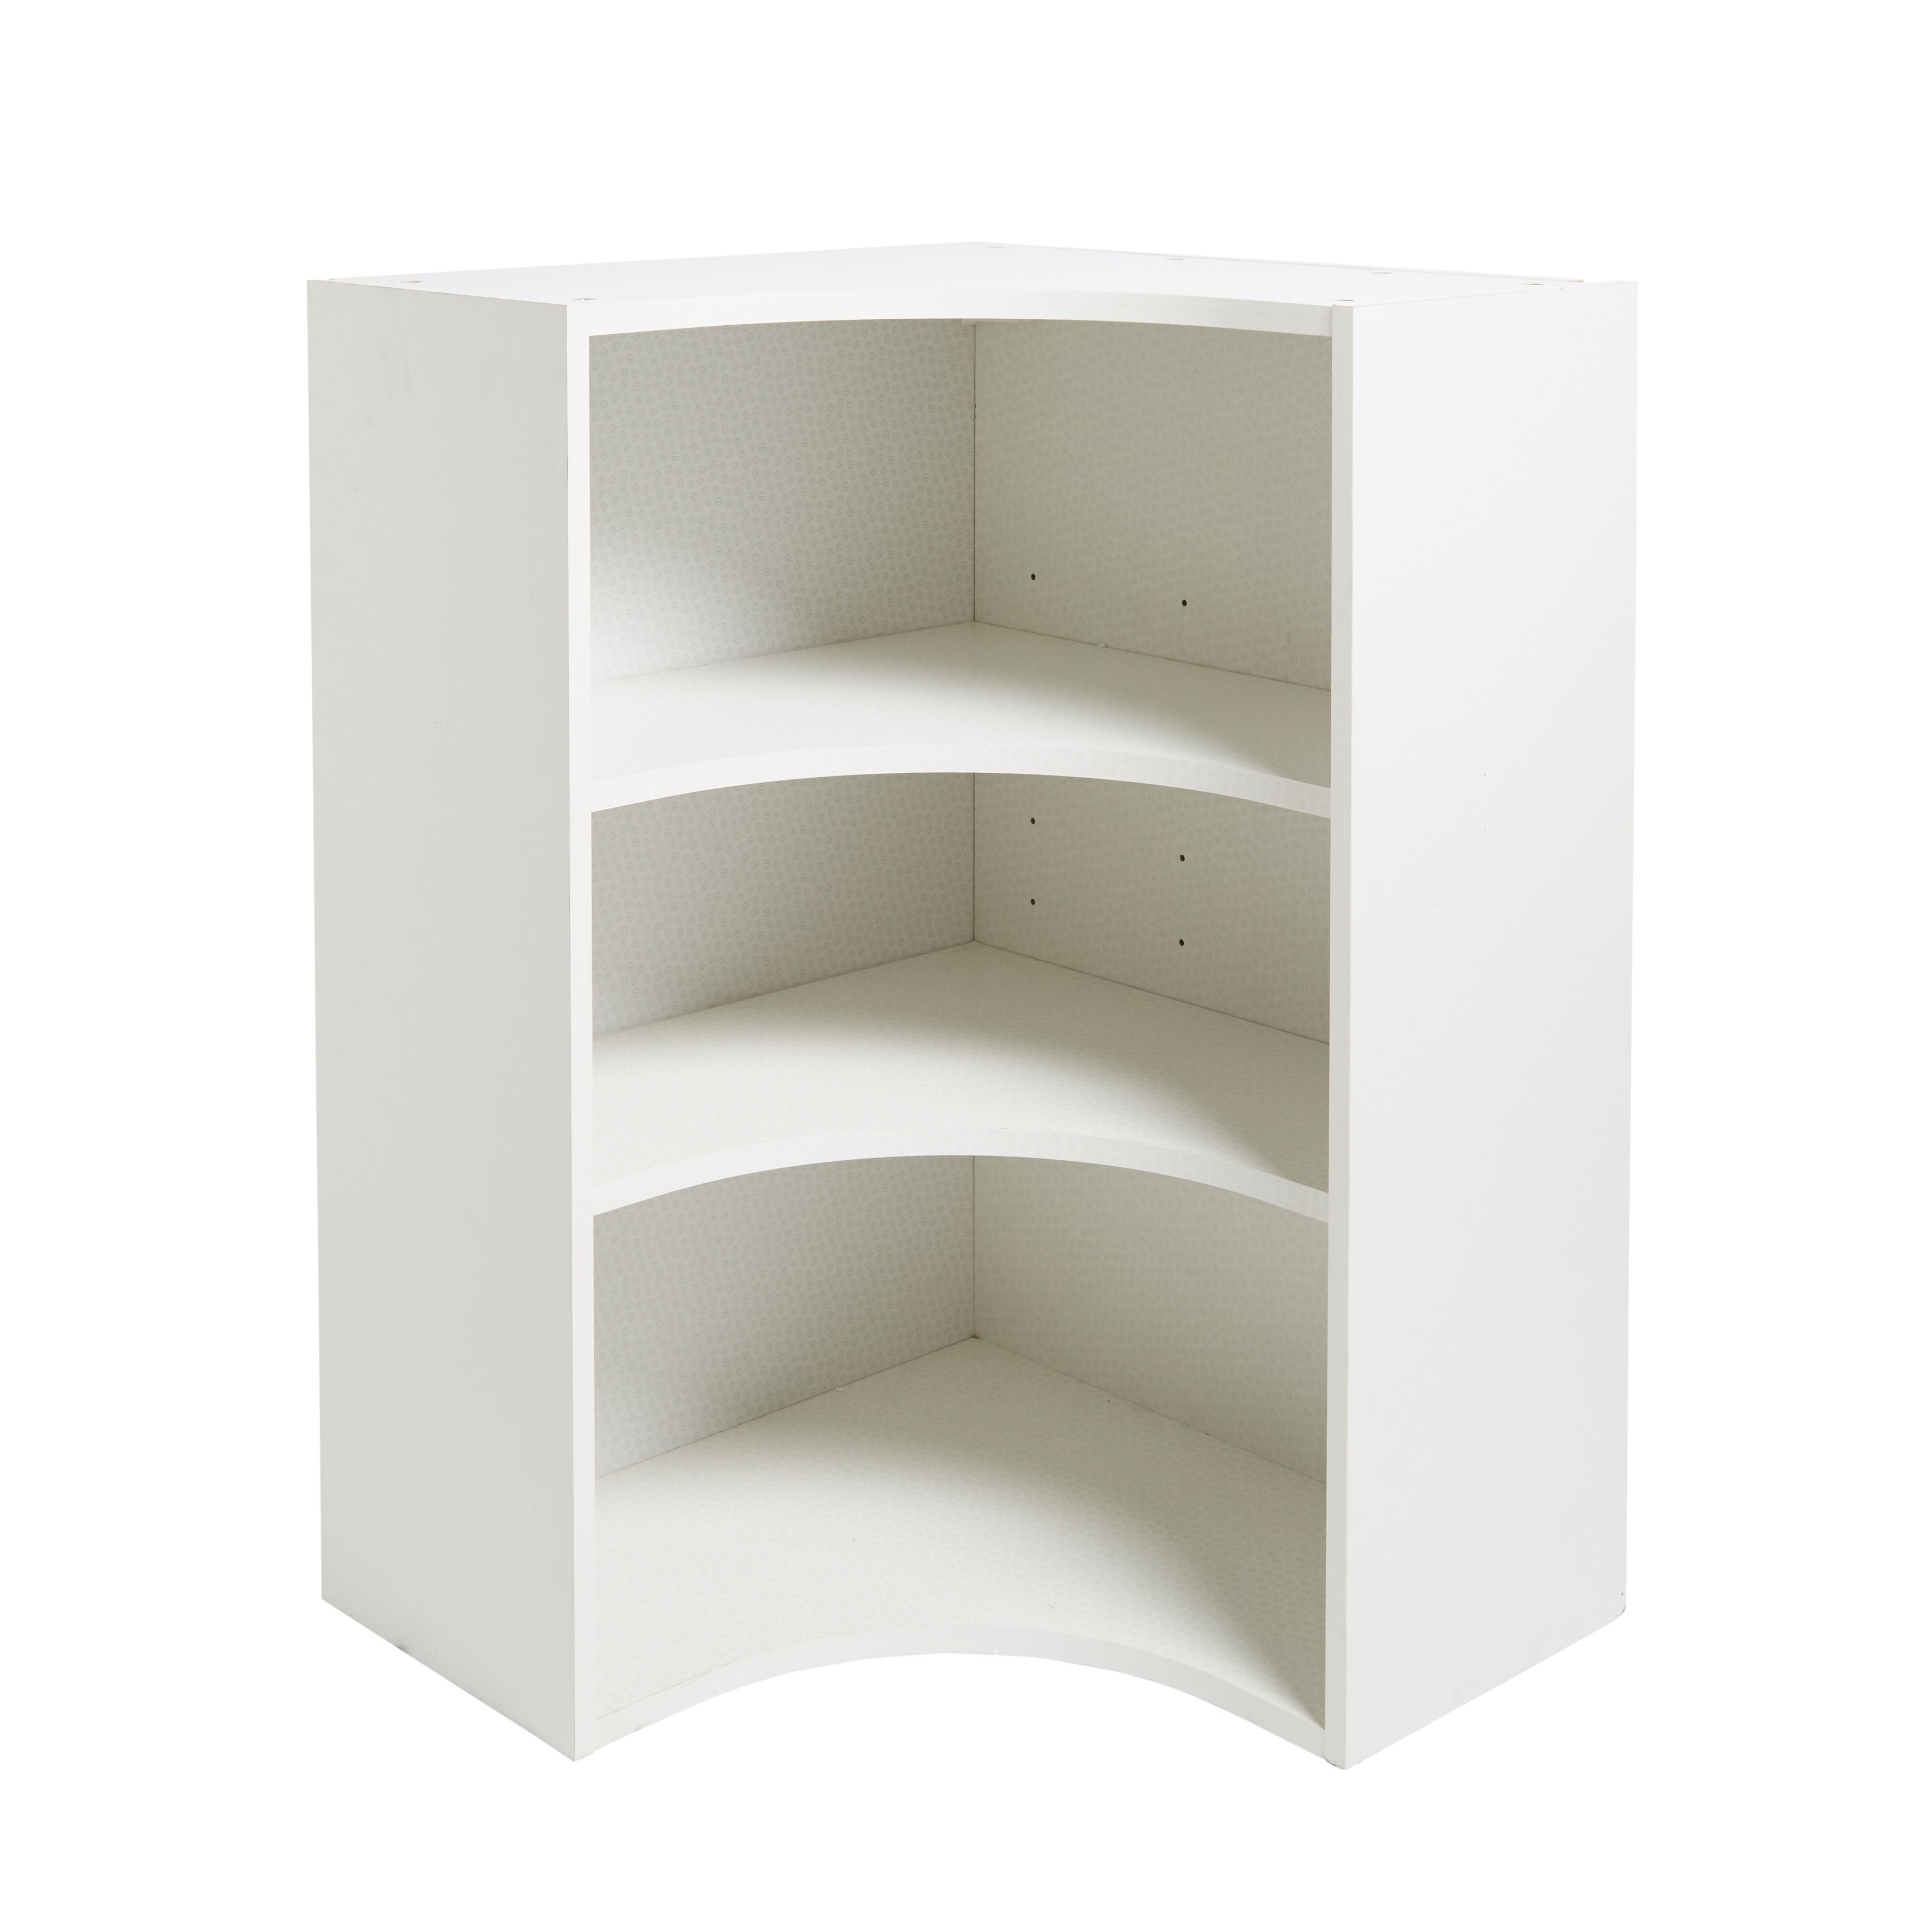 Kitchen Shelves B Q: IT Kitchens White Curved Corner Tall Wall Cabinet (W)625mm